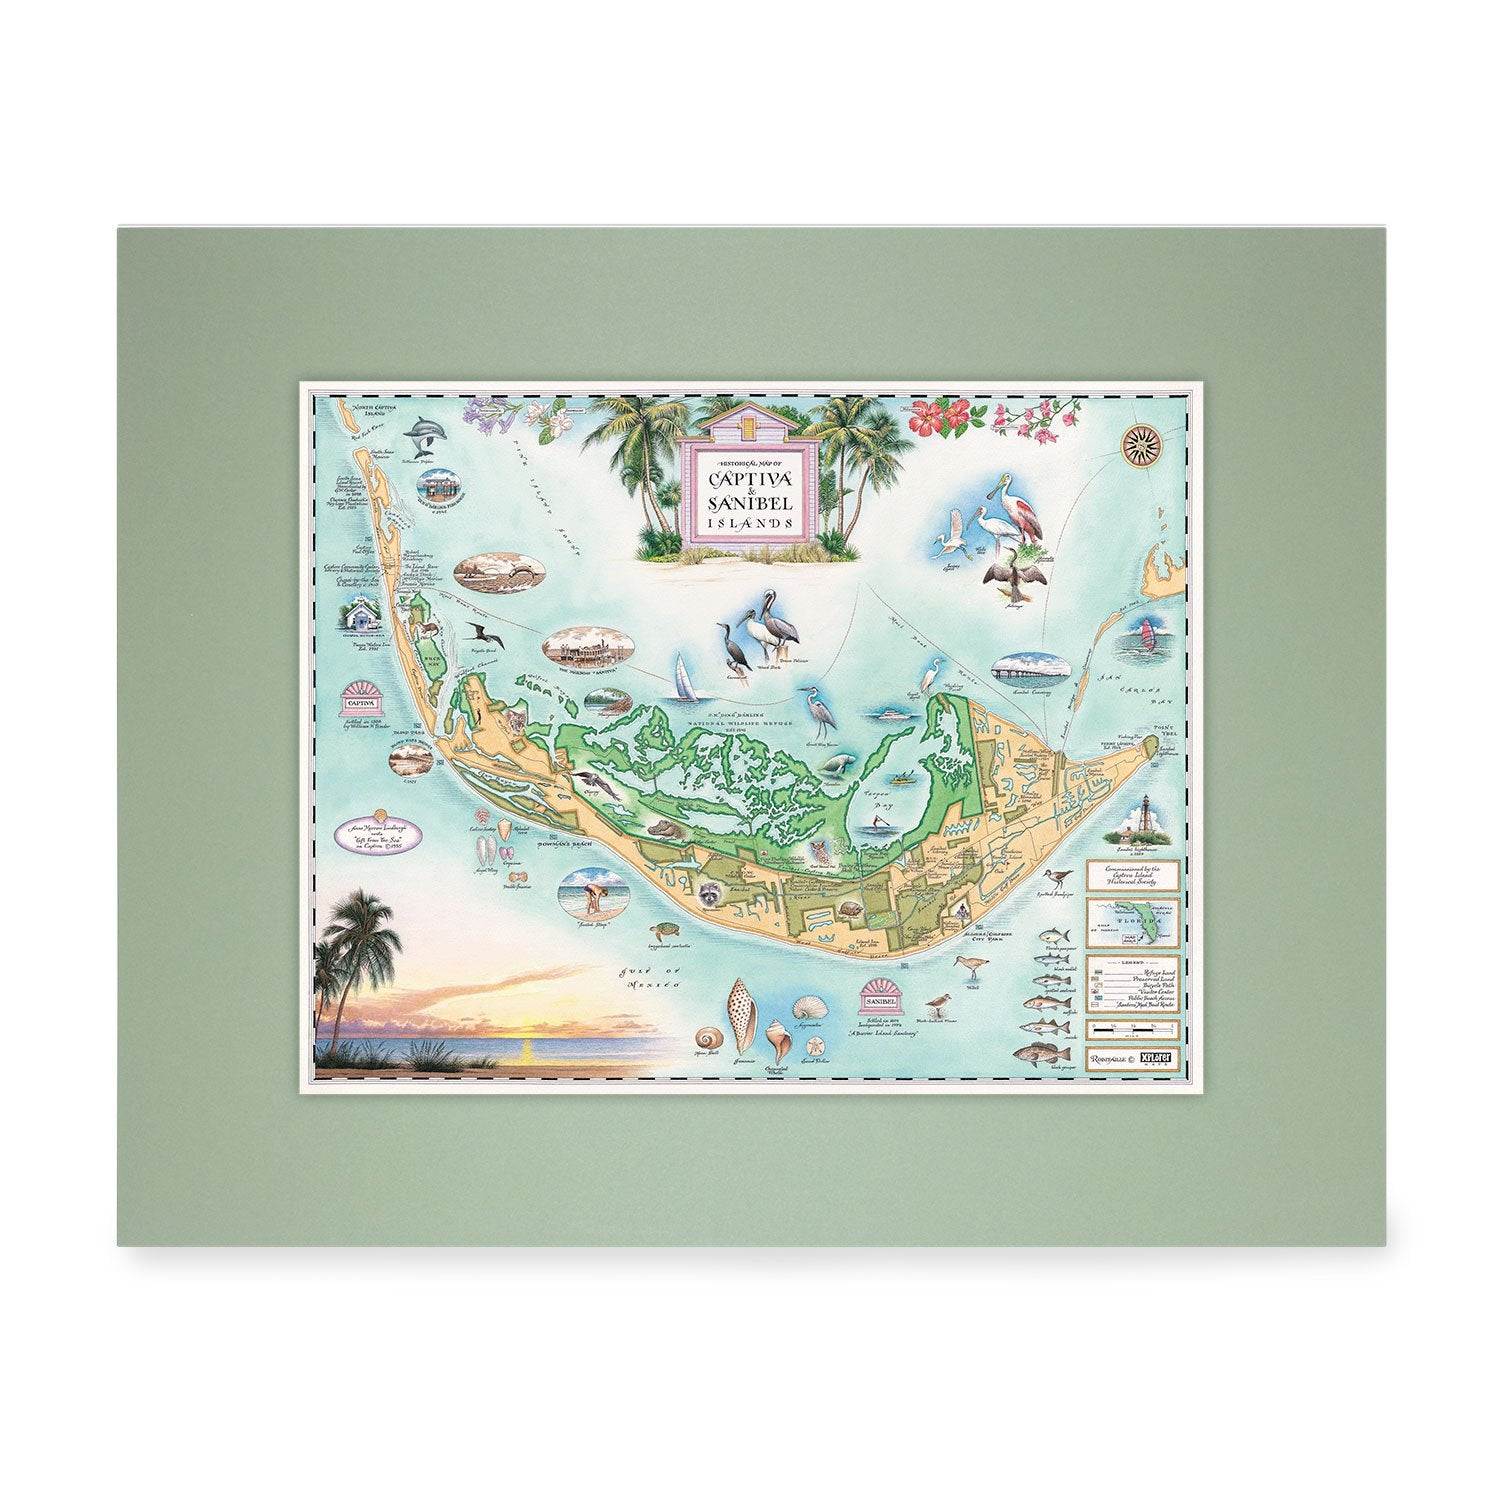 Sanibel Captiva Islands Mini-Map on south seas island resort map, st. augustine map, union park map, steinhatchee map, east coast of the united states map, wellington map, martinique on the gulf map, bowman's beach map, pratumnak map, villas by the sea map, chokoloskee map, alaqua lakes map, clewiston map, captiva map, fort myers map, florida map, st lucie map, ft. lauderdale map, buckingham map, ponce inlet map,